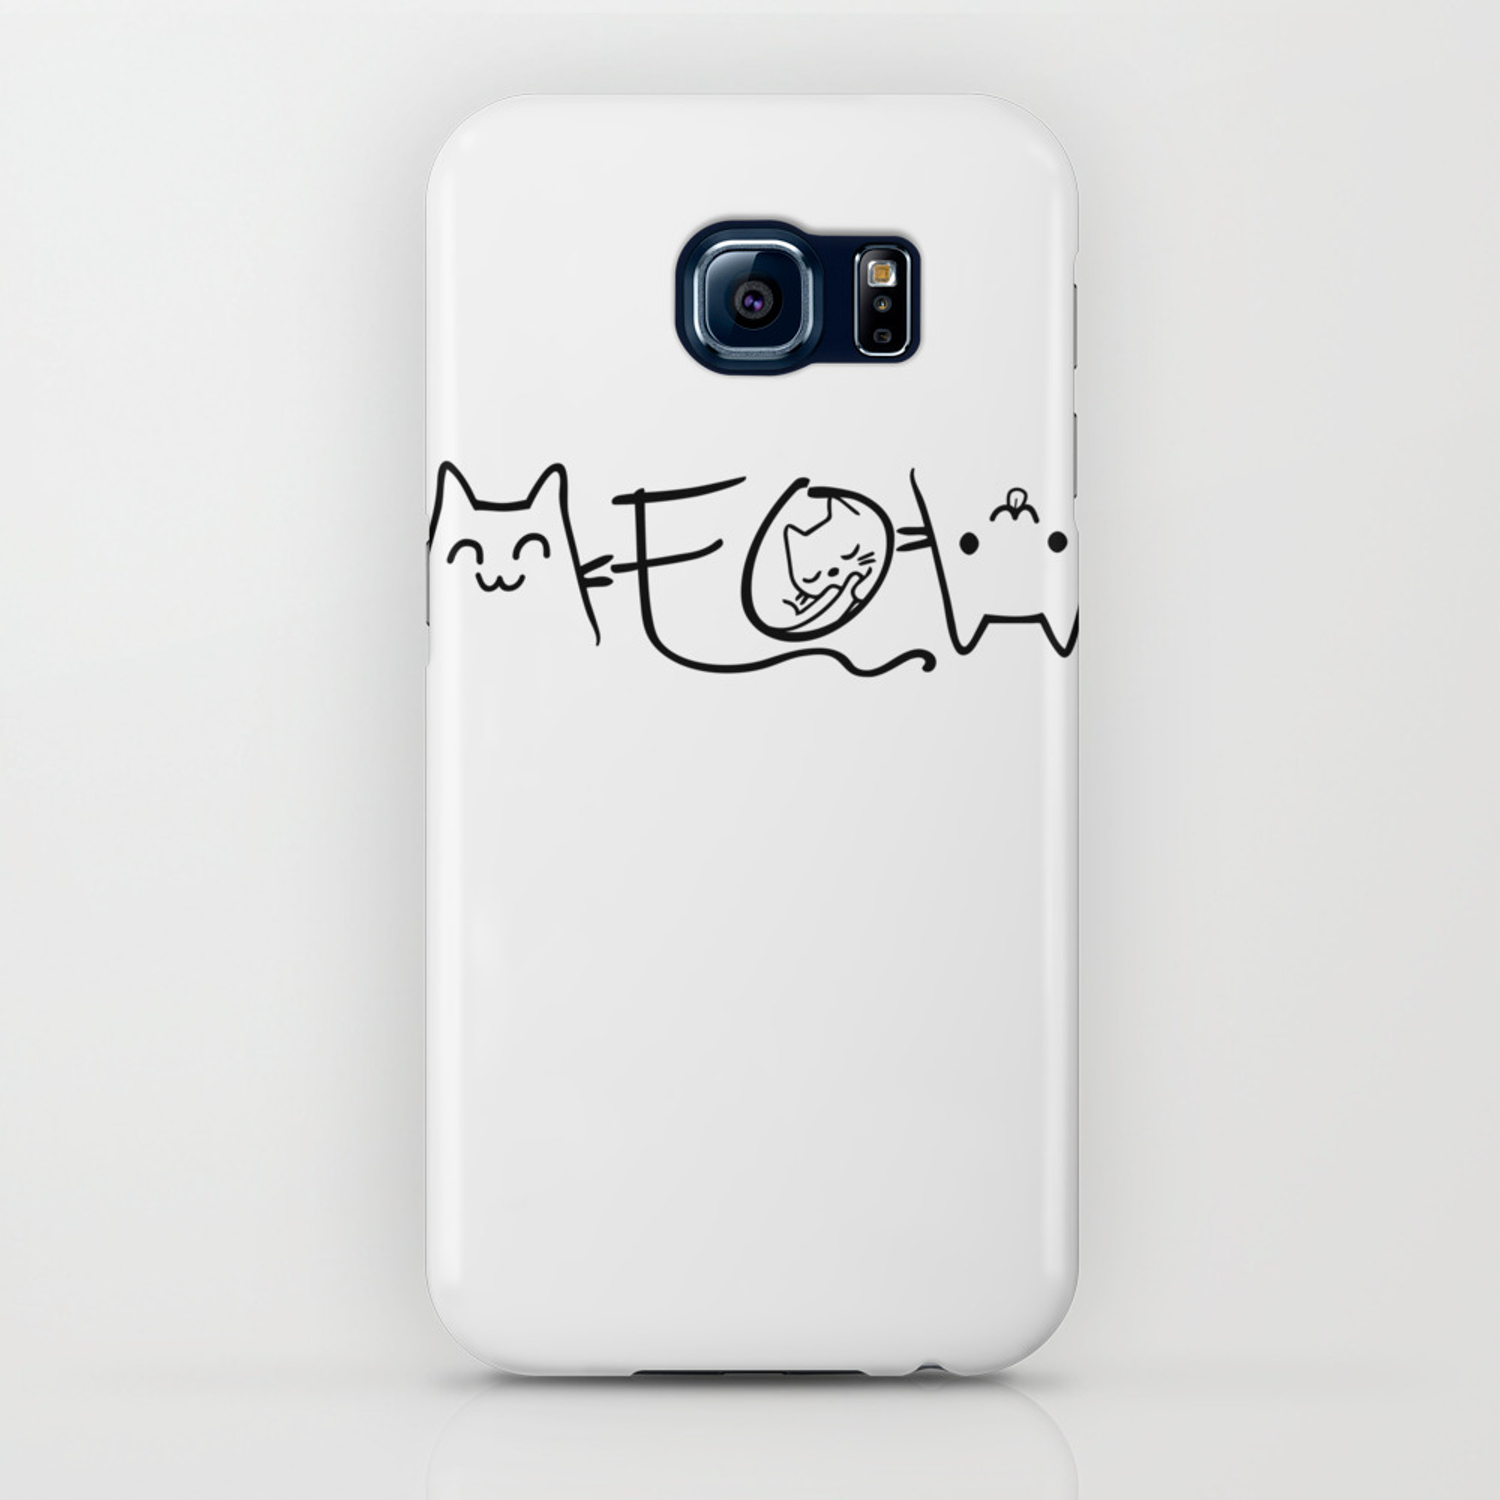 Meow Cute Cat Face Funny Costume Product For Kawaii Girls Iphone Case